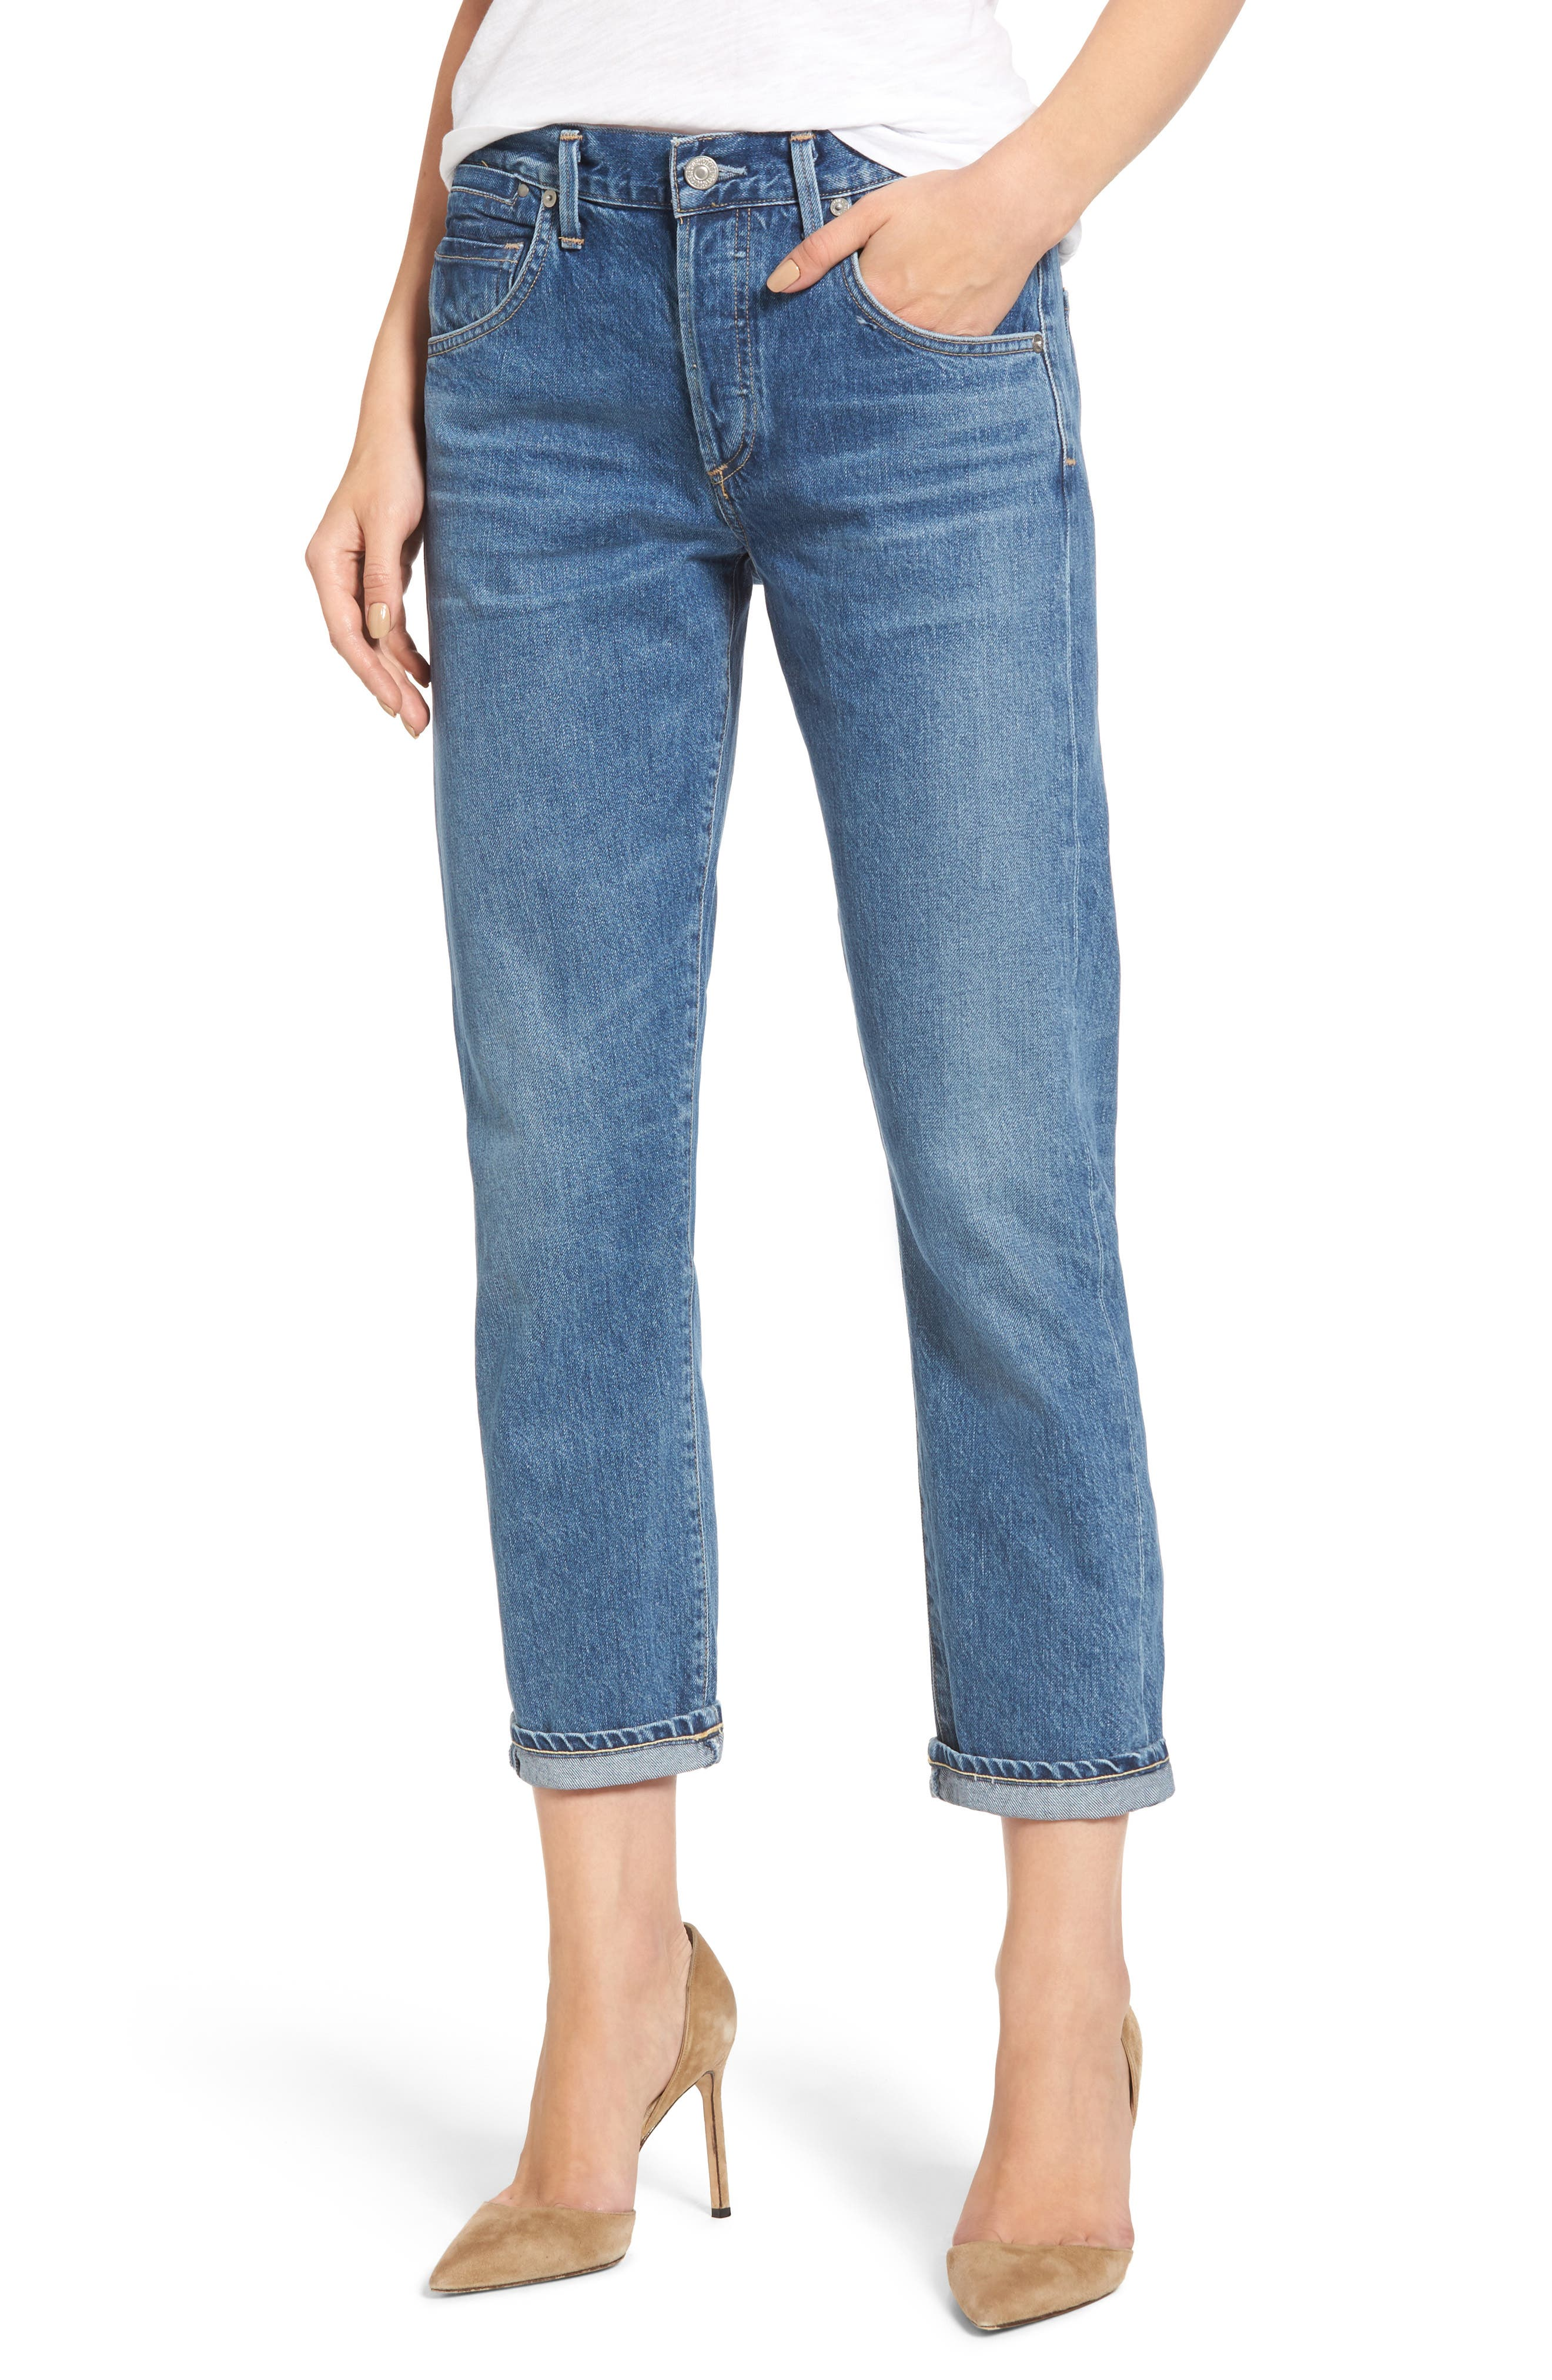 Emerson Slim Boyfriend Jeans,                         Main,                         color, Admire